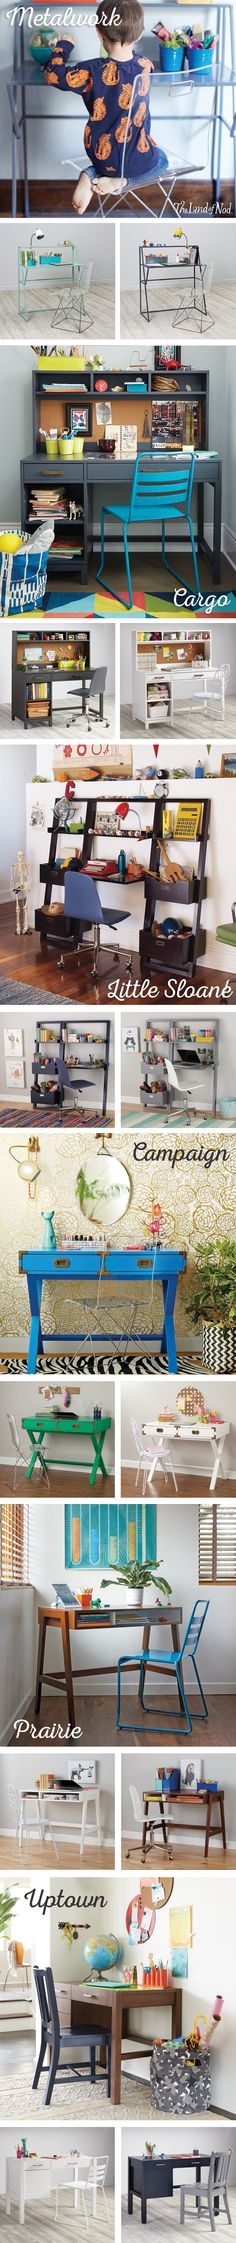 Pop quiz: what's the must-have kids furniture for acing the school year? A kids desk, of course! The Land of Nod's lineup features modern and stylish picks for any workspace. From wood desks and acrylic desks to wall desks and leaning desks, there are tons of styles to suit your need. Plus, don't forget to complete the workspace with a matching chair and hutch too.